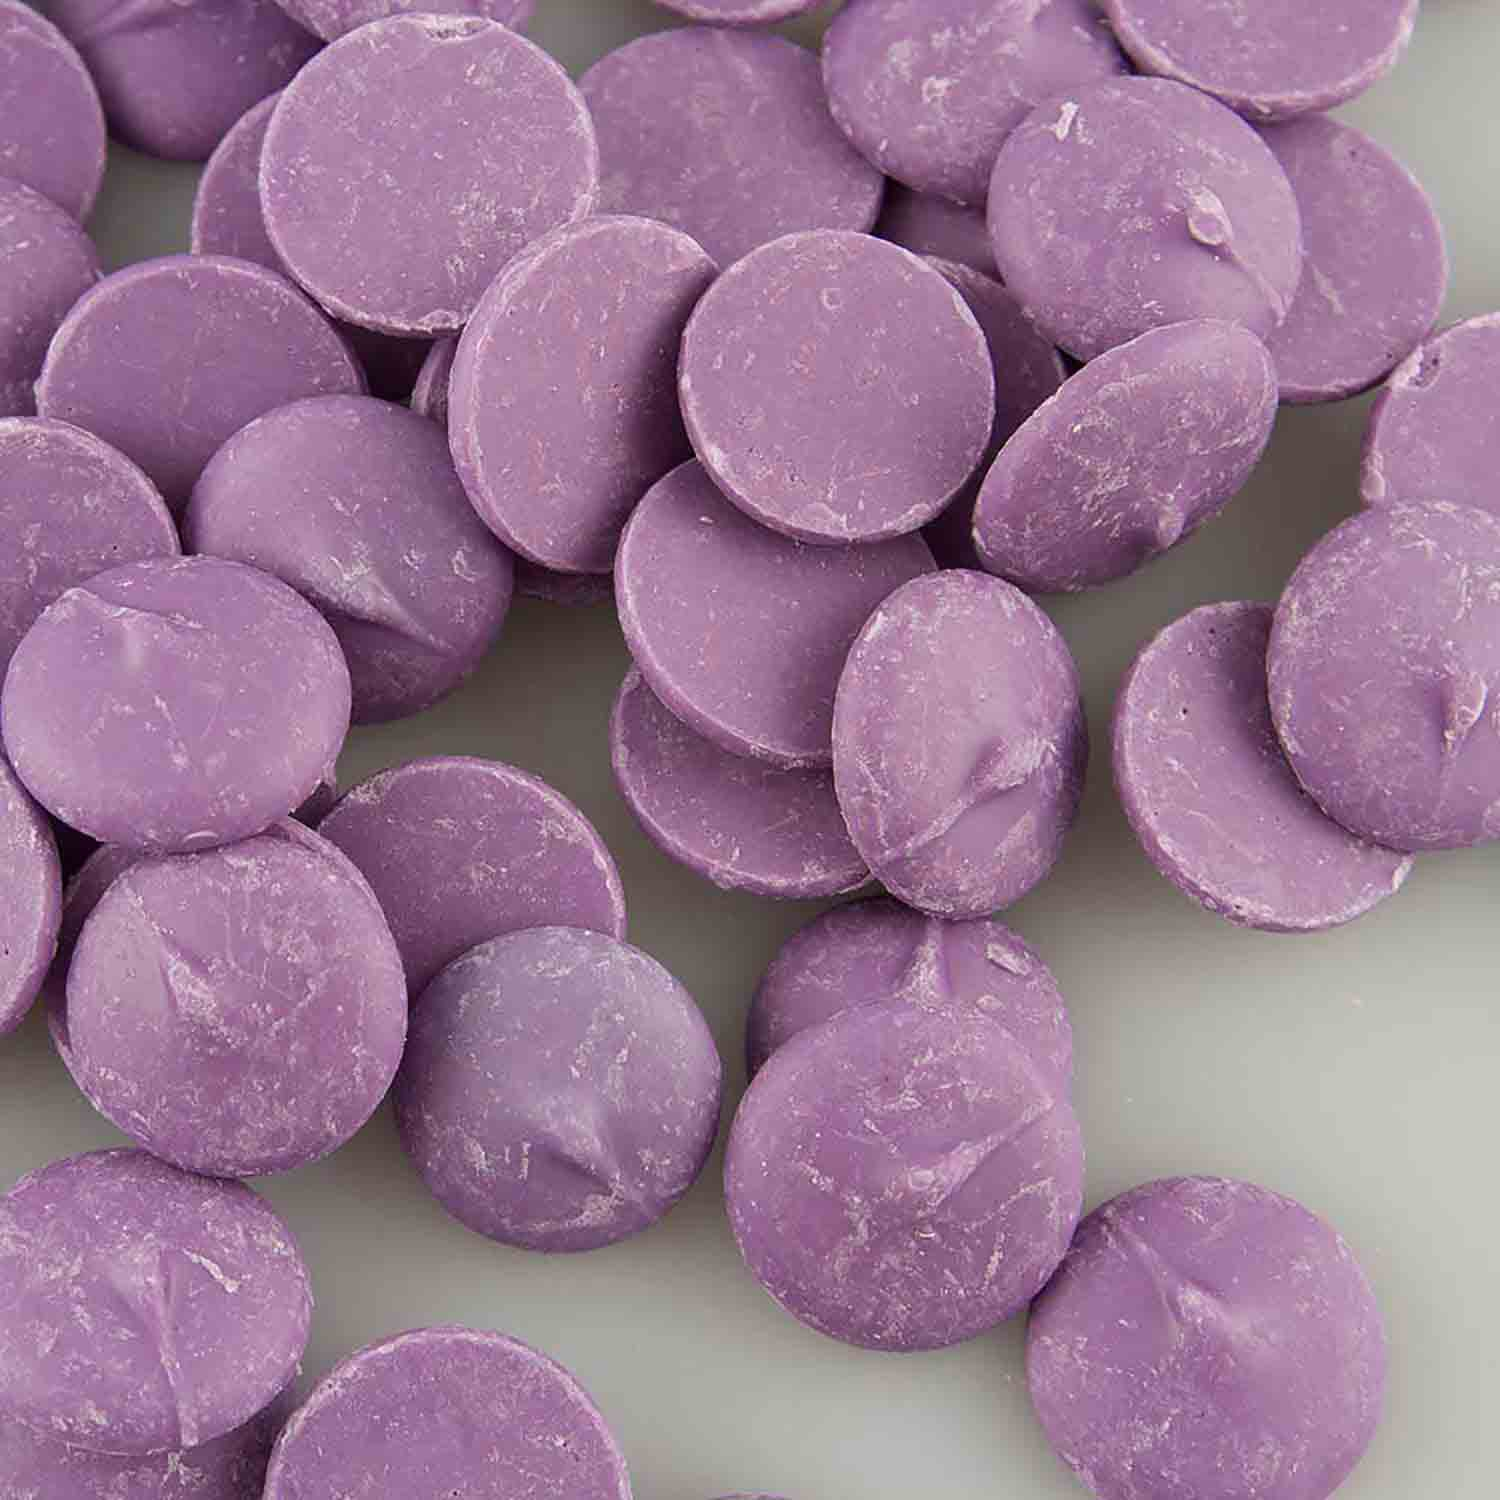 Orchid Vanilla Flavored Candy Coating